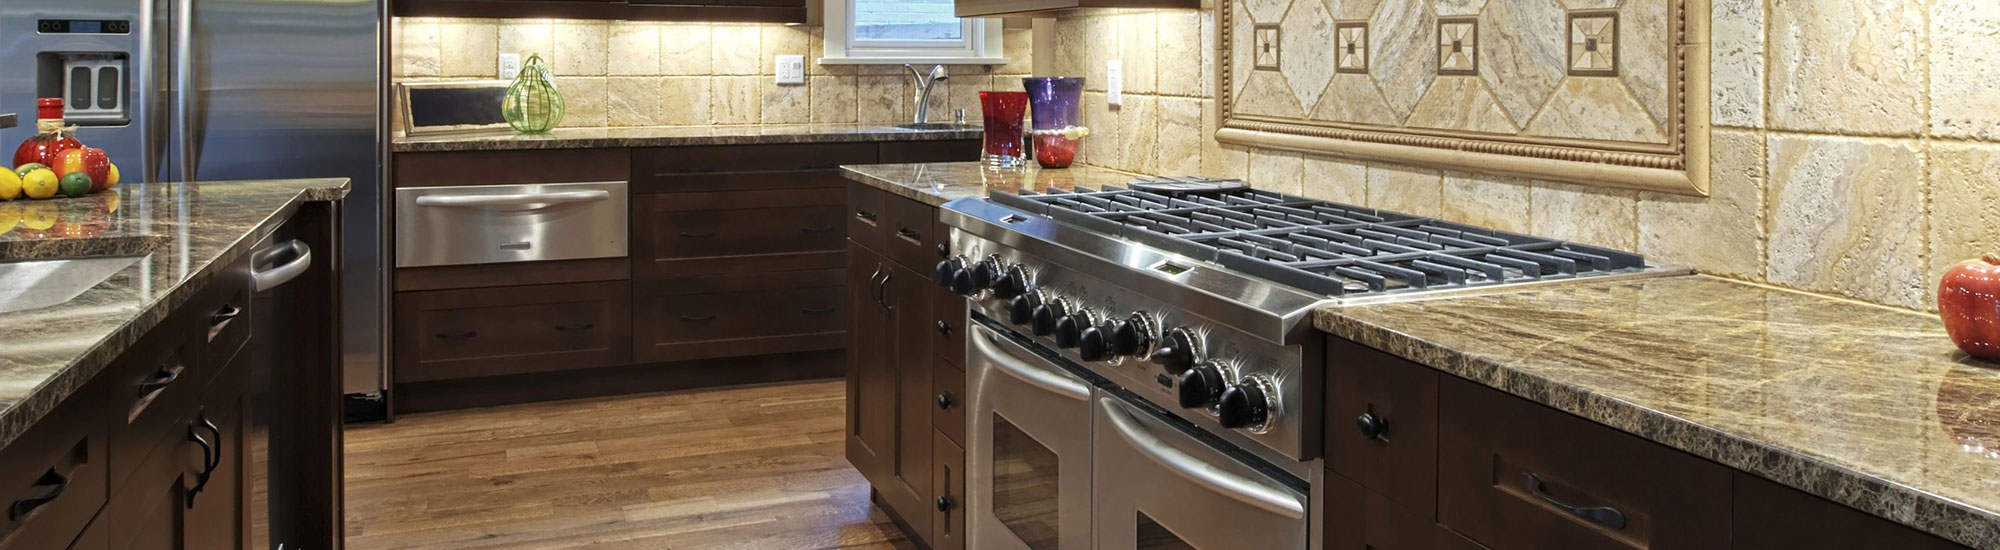 Granite Countertops Atlanta : Granite countertops and flooring ? Atlanta and Jacksonville ...